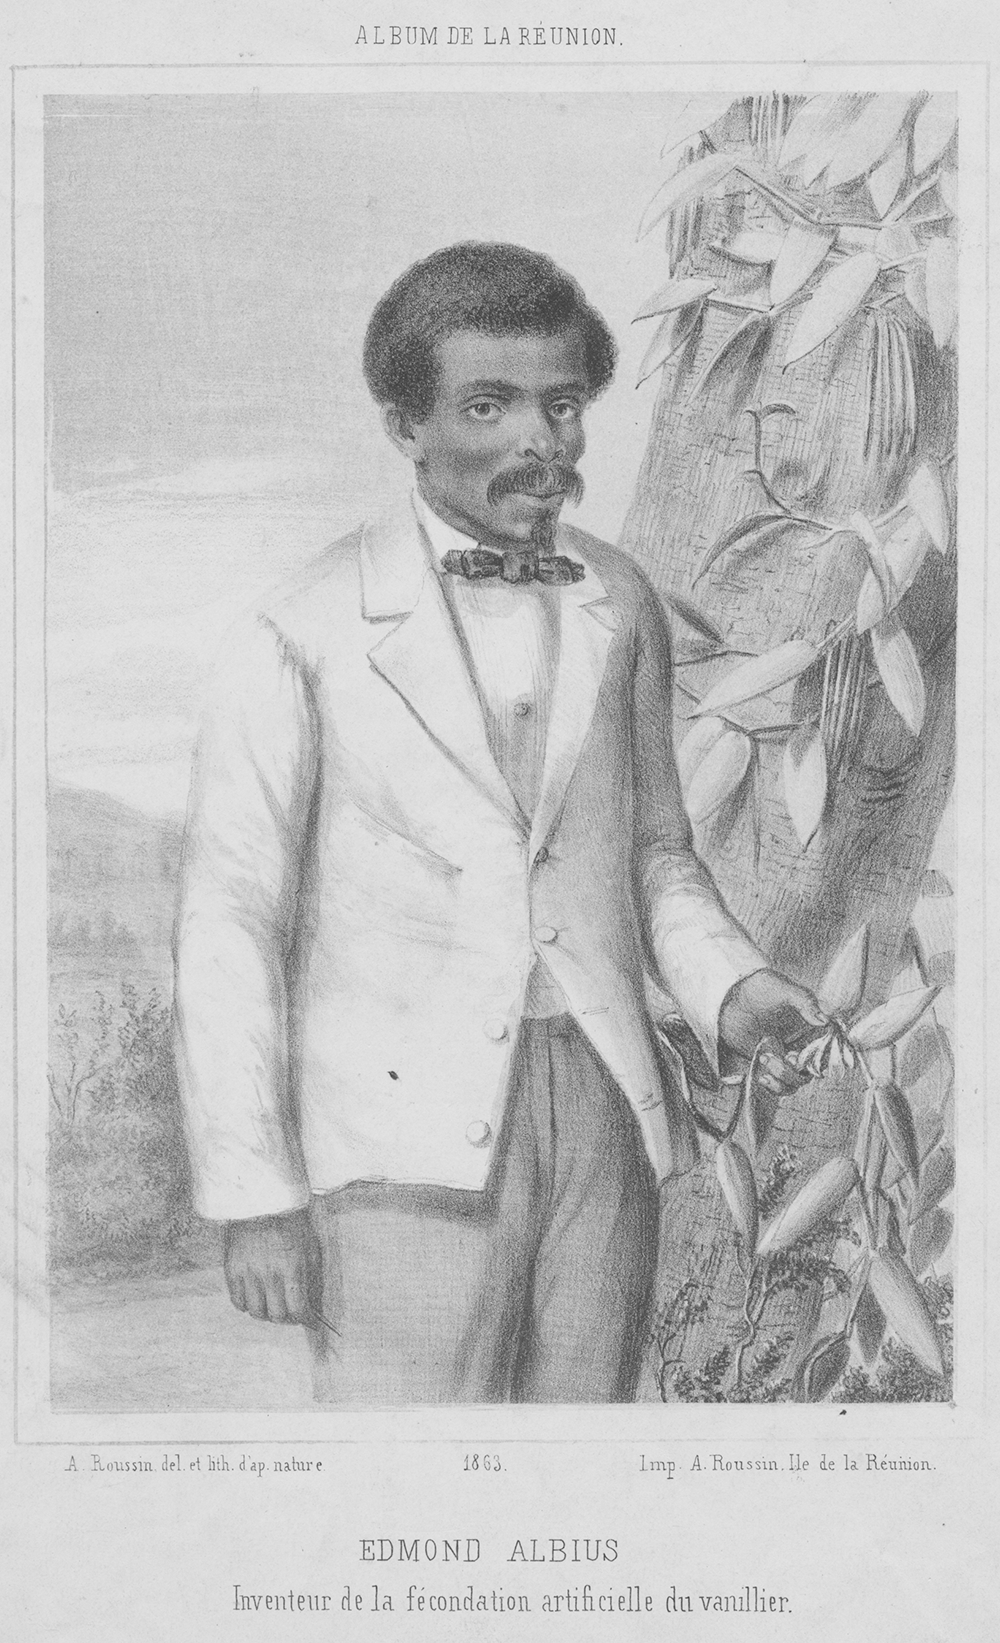 Edmond Albius, by Antoine Roussin, 1863. Schomburg Center for Research in Black Culture, Photographs and Prints Division, The New York Public Library Digital Collections.